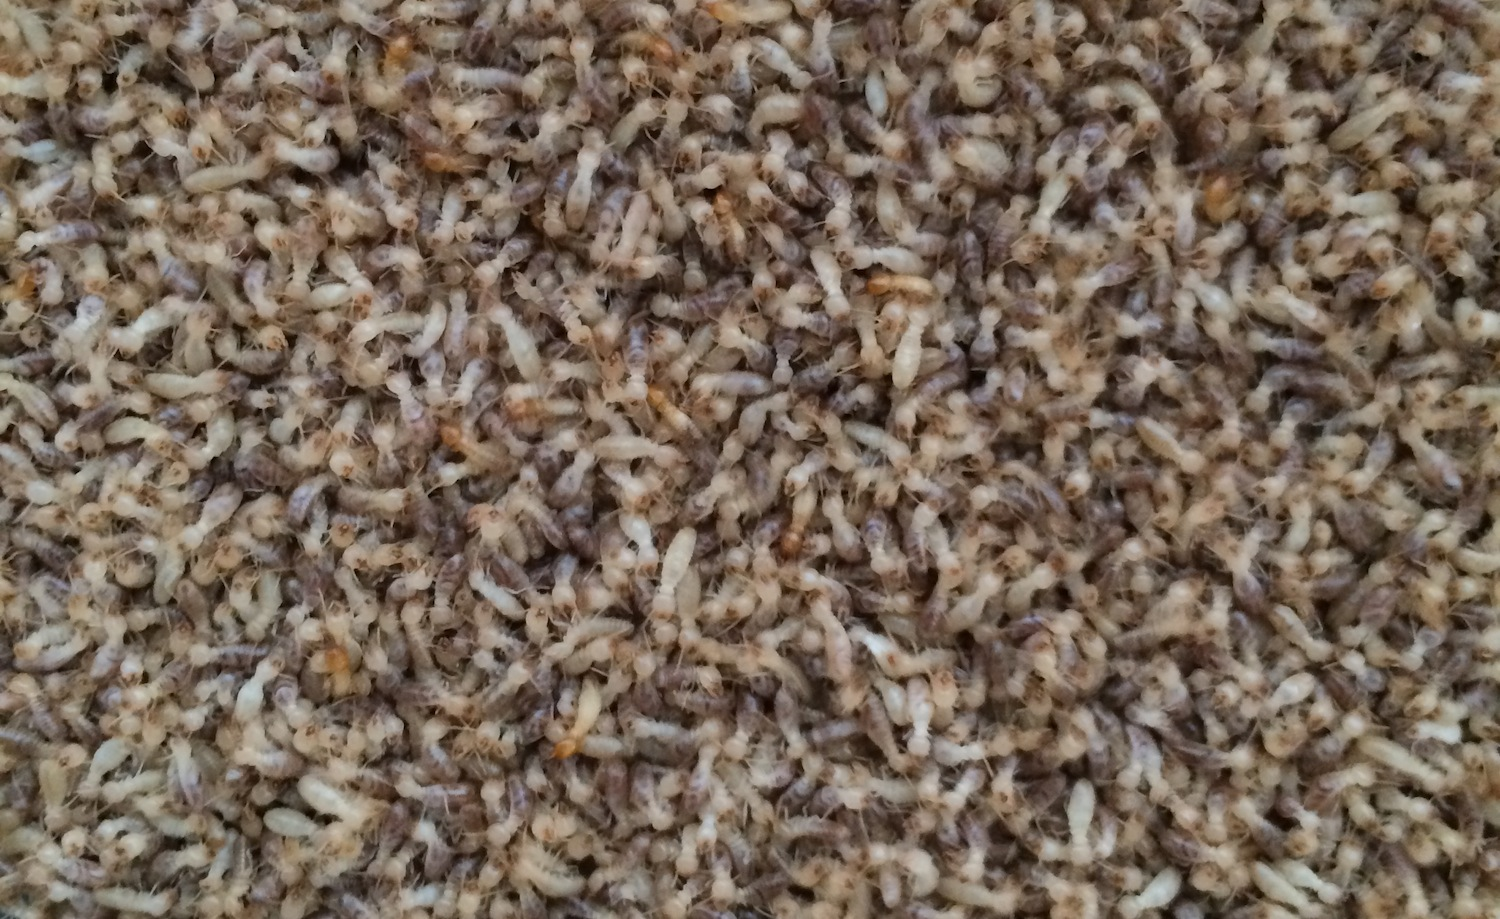 Termites can attack homes in great numbers, so it's important to know which are the best termite treatments to get rid of them and protect your home